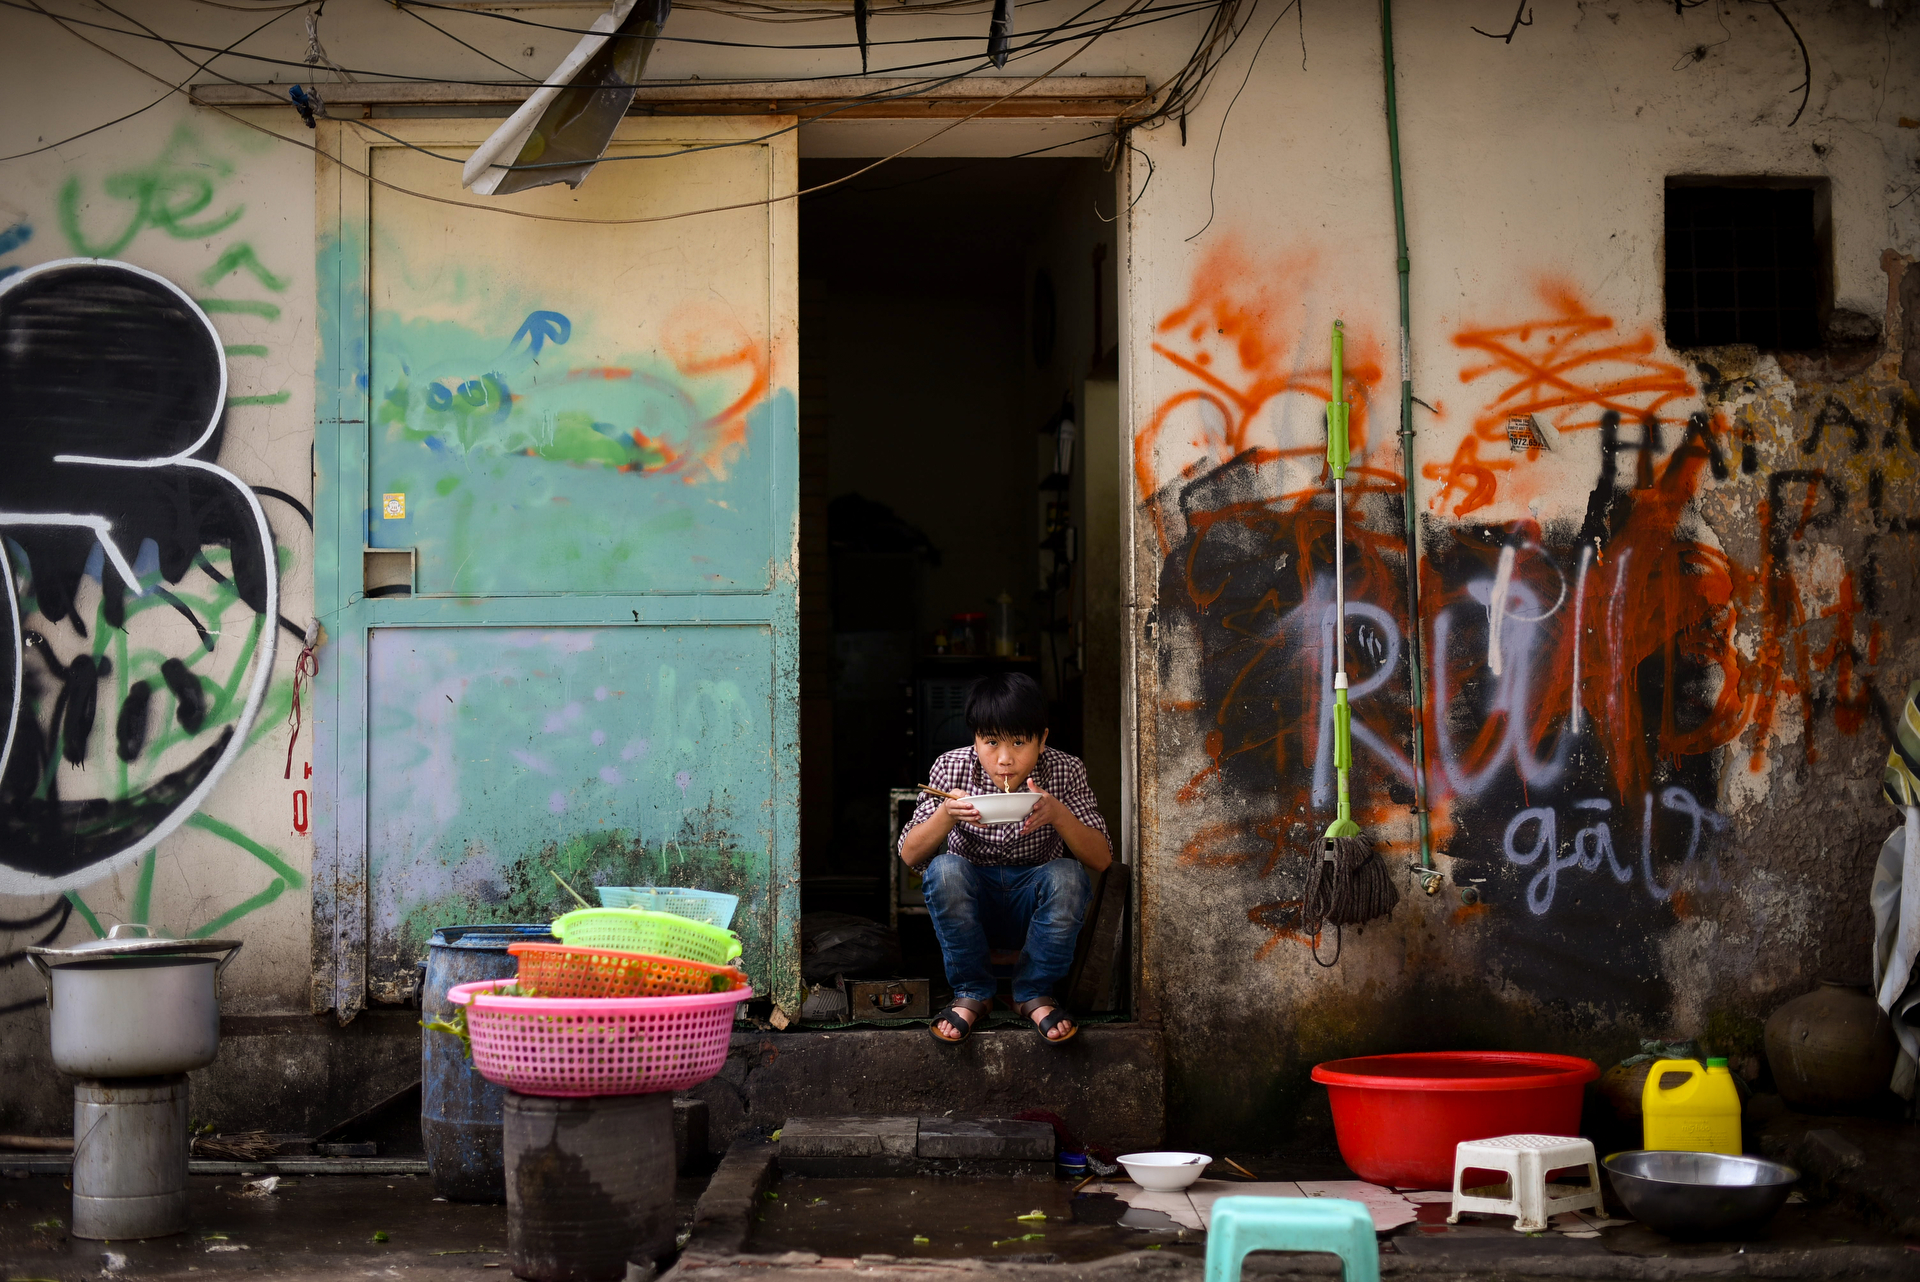 Poverty is apparent almost everywhere across Vietnam